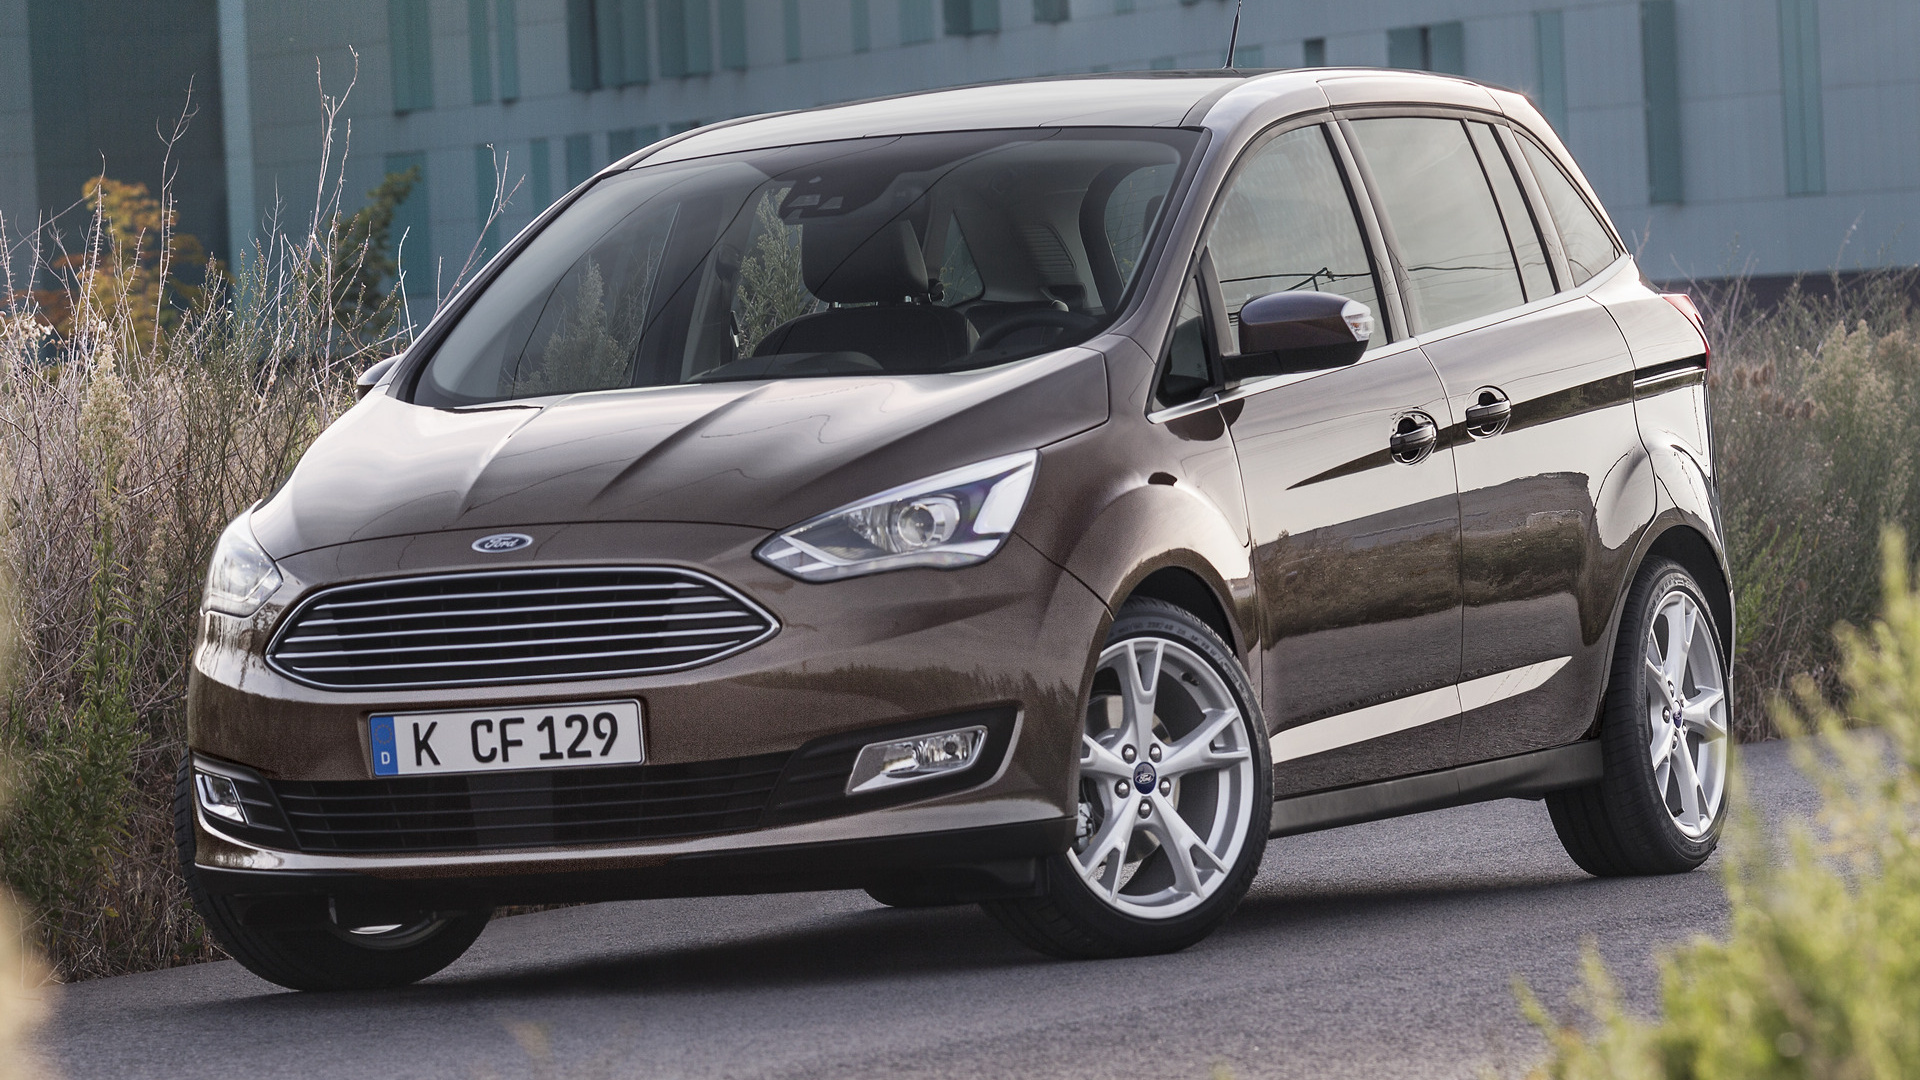 ford grand c max 2015 wallpapers and hd images car pixel. Black Bedroom Furniture Sets. Home Design Ideas